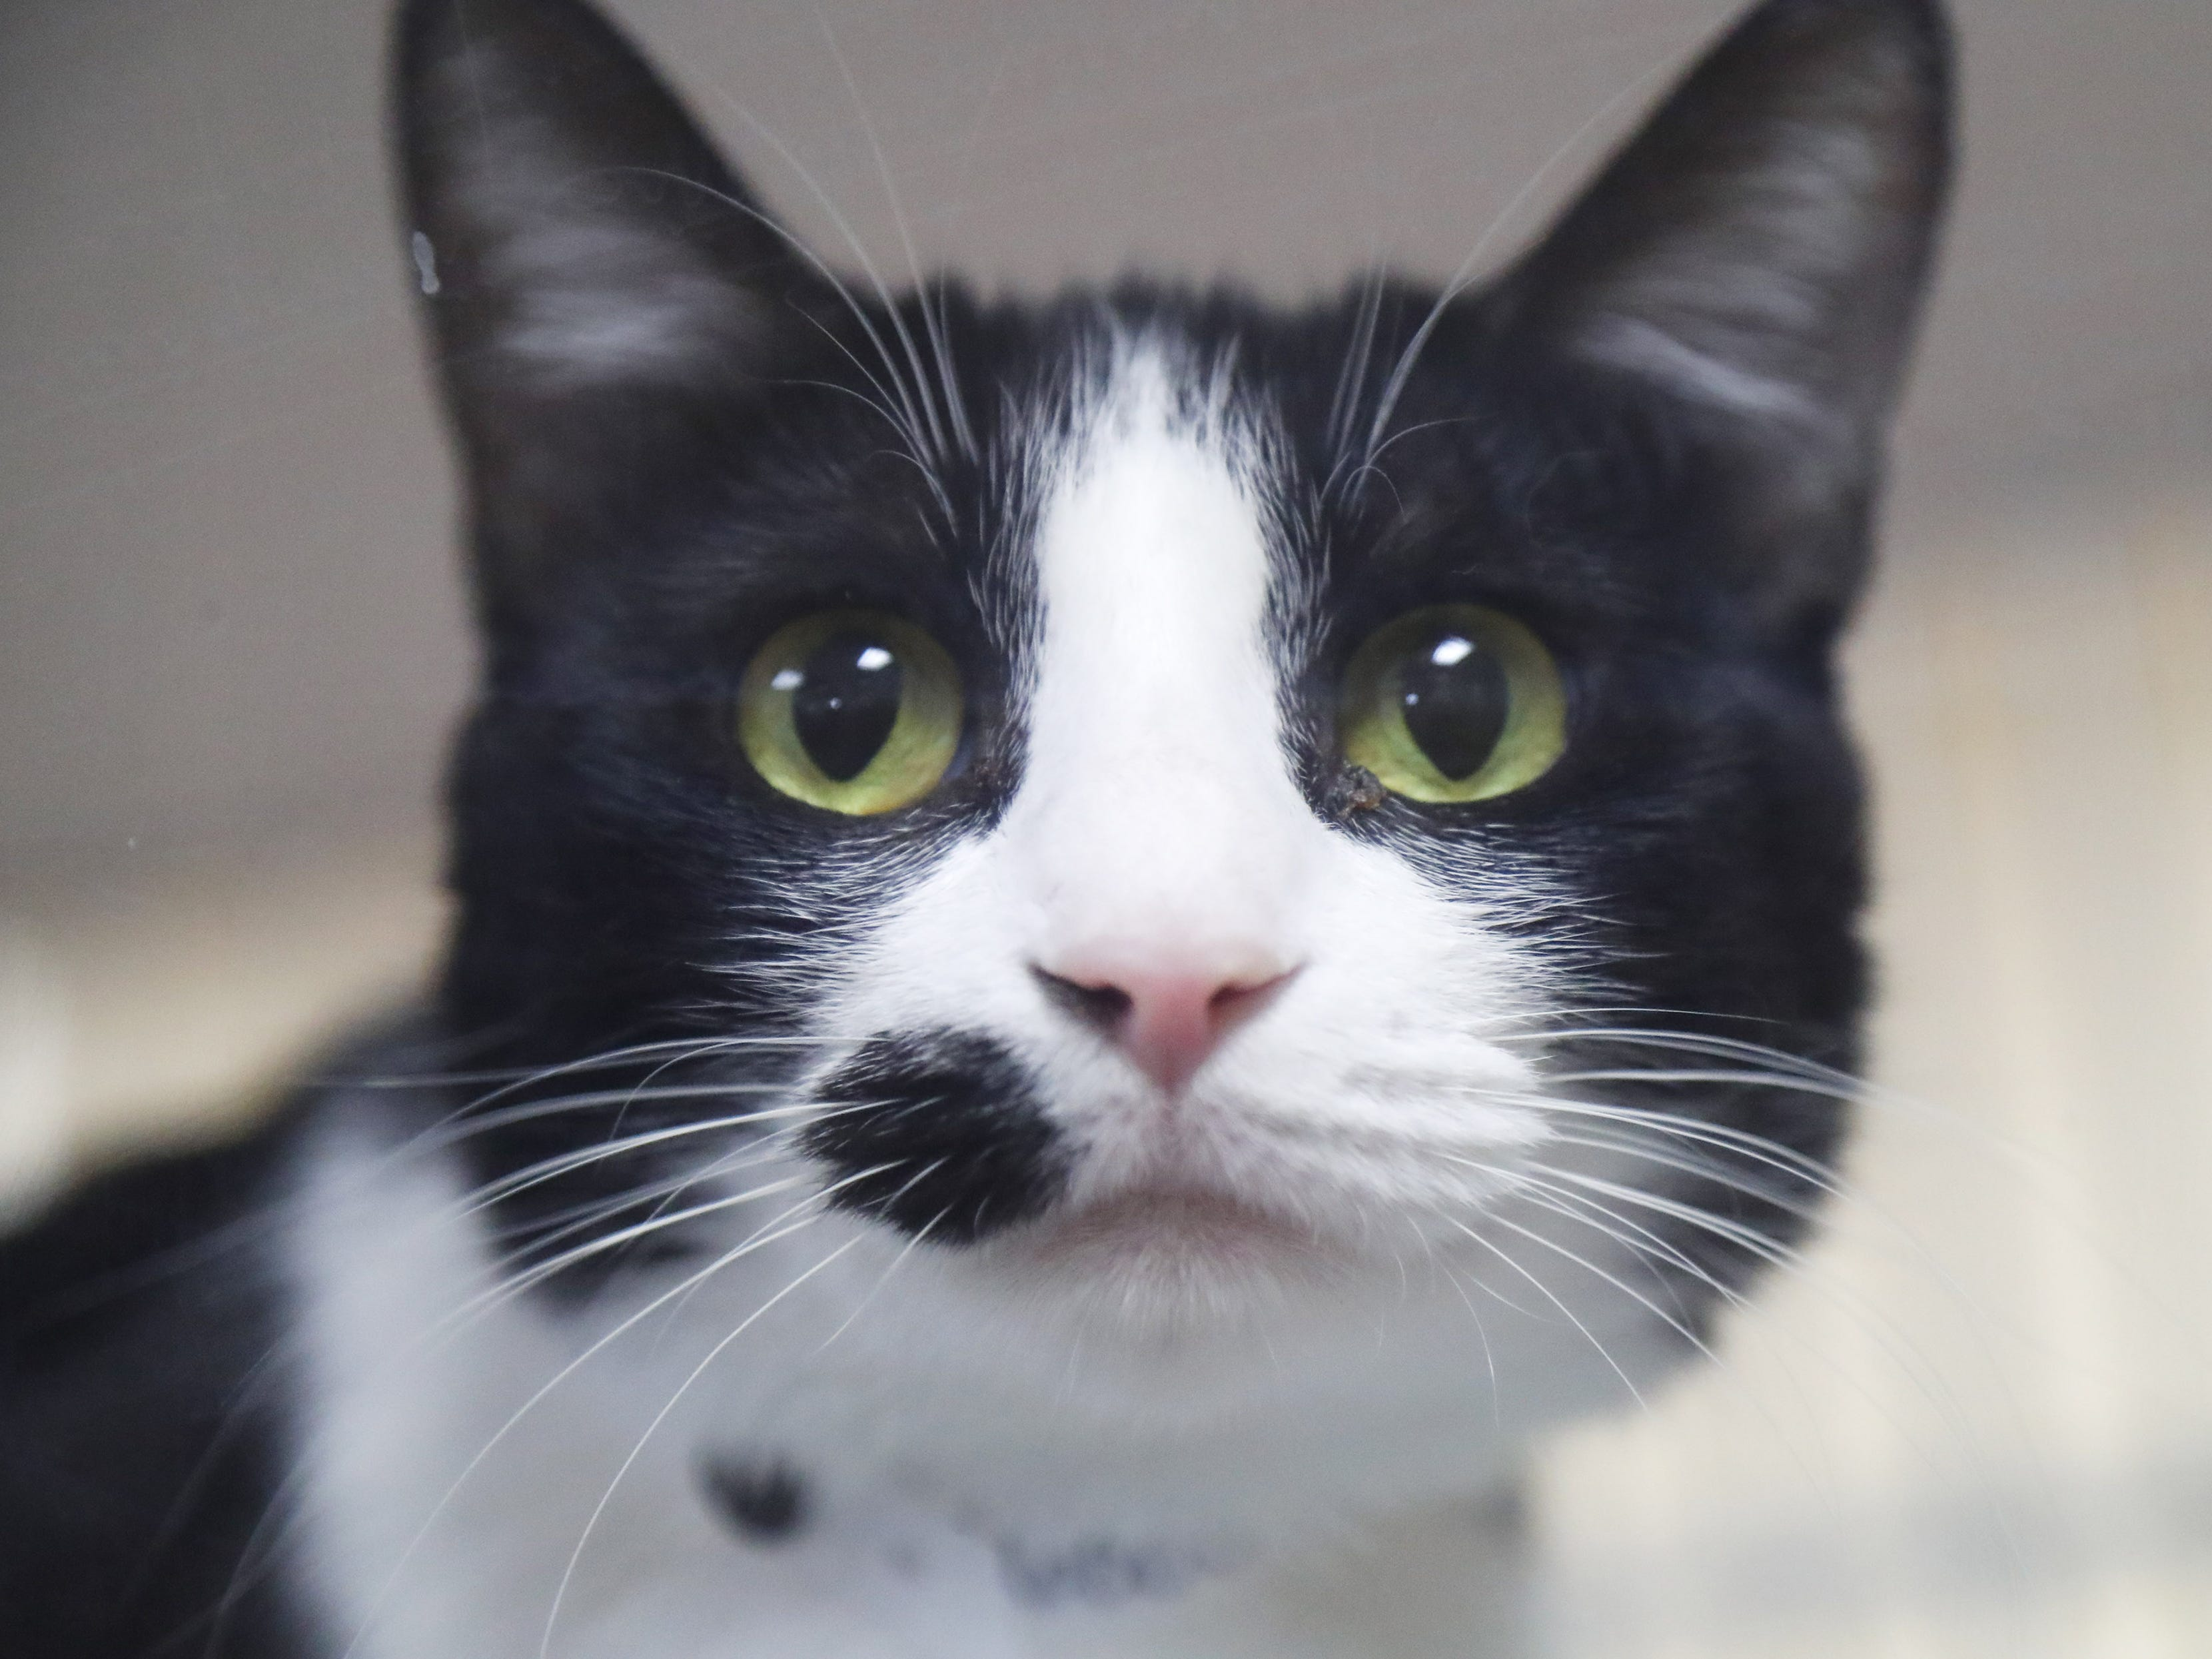 Dumpling, a domestic shorthair, waits to be adopted at the Arizona Humane Society in Phoenix on April 1, 2019. More than 8,000 dogs and cats have been surrendered in Maricopa County since the start of the year.